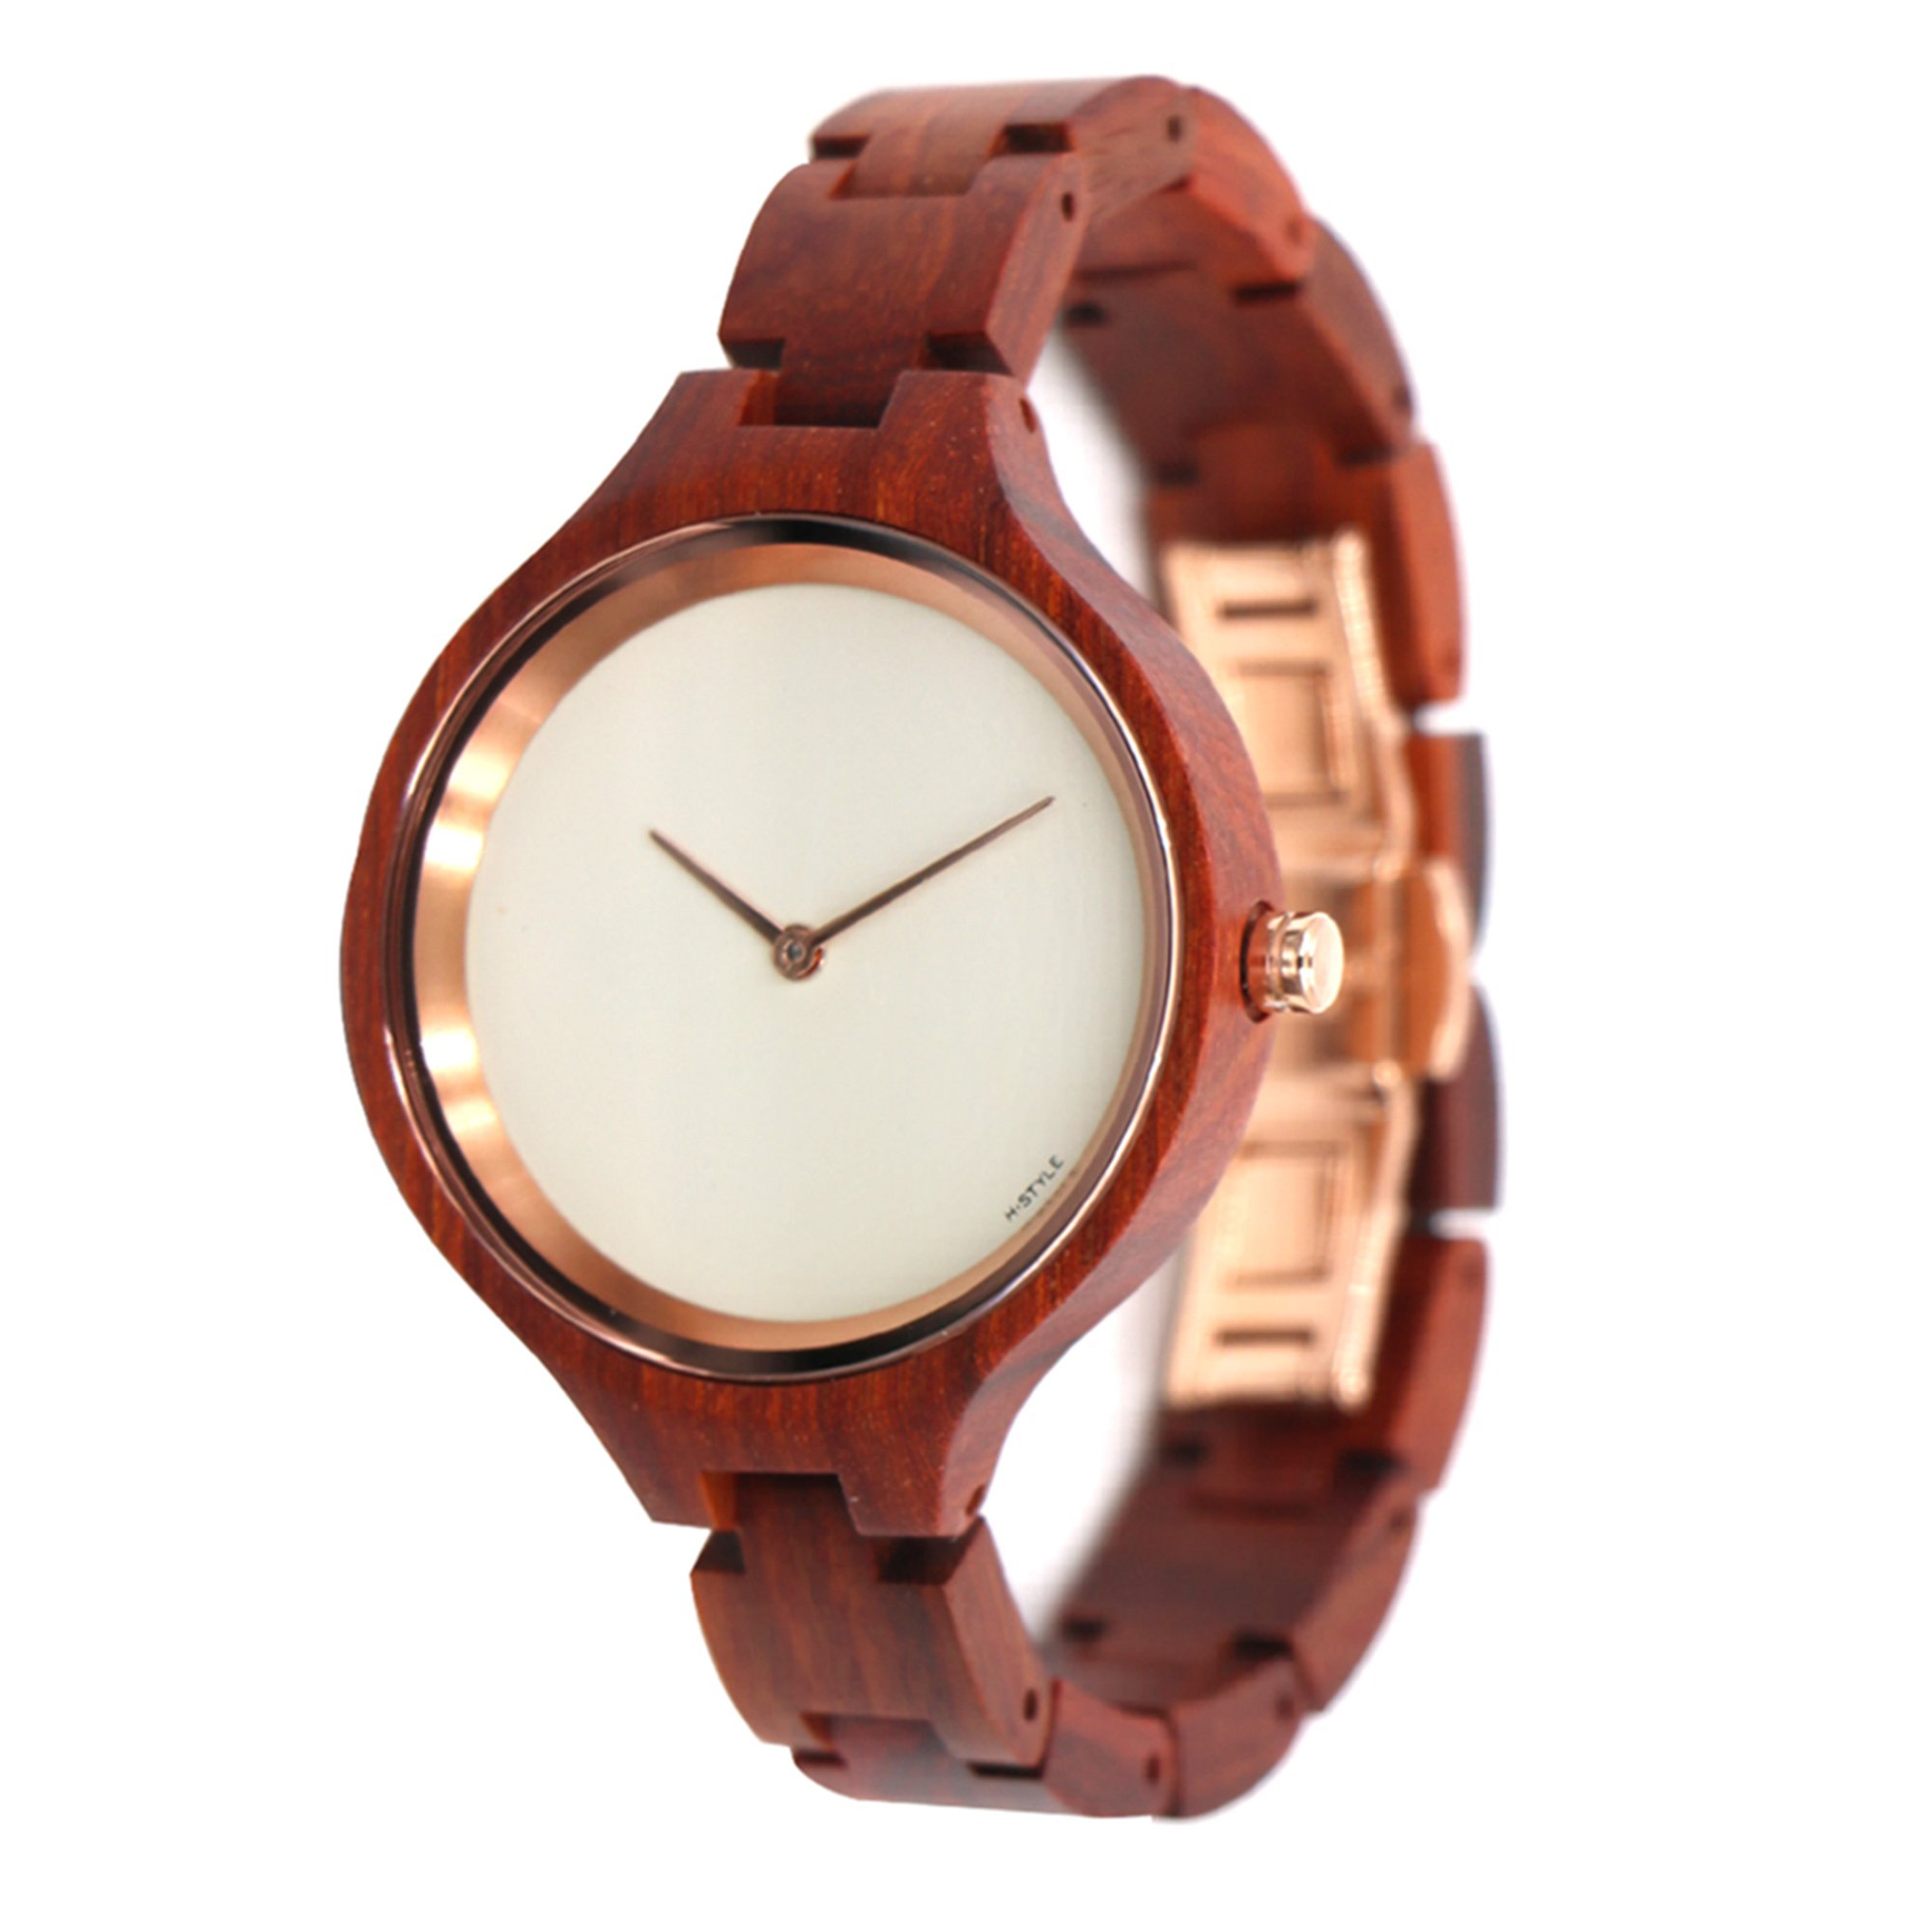 DarkCom Unique Luxury Wooden Watch For Women Swiss Quartz Movement Vintage Sapphire Glass Watches